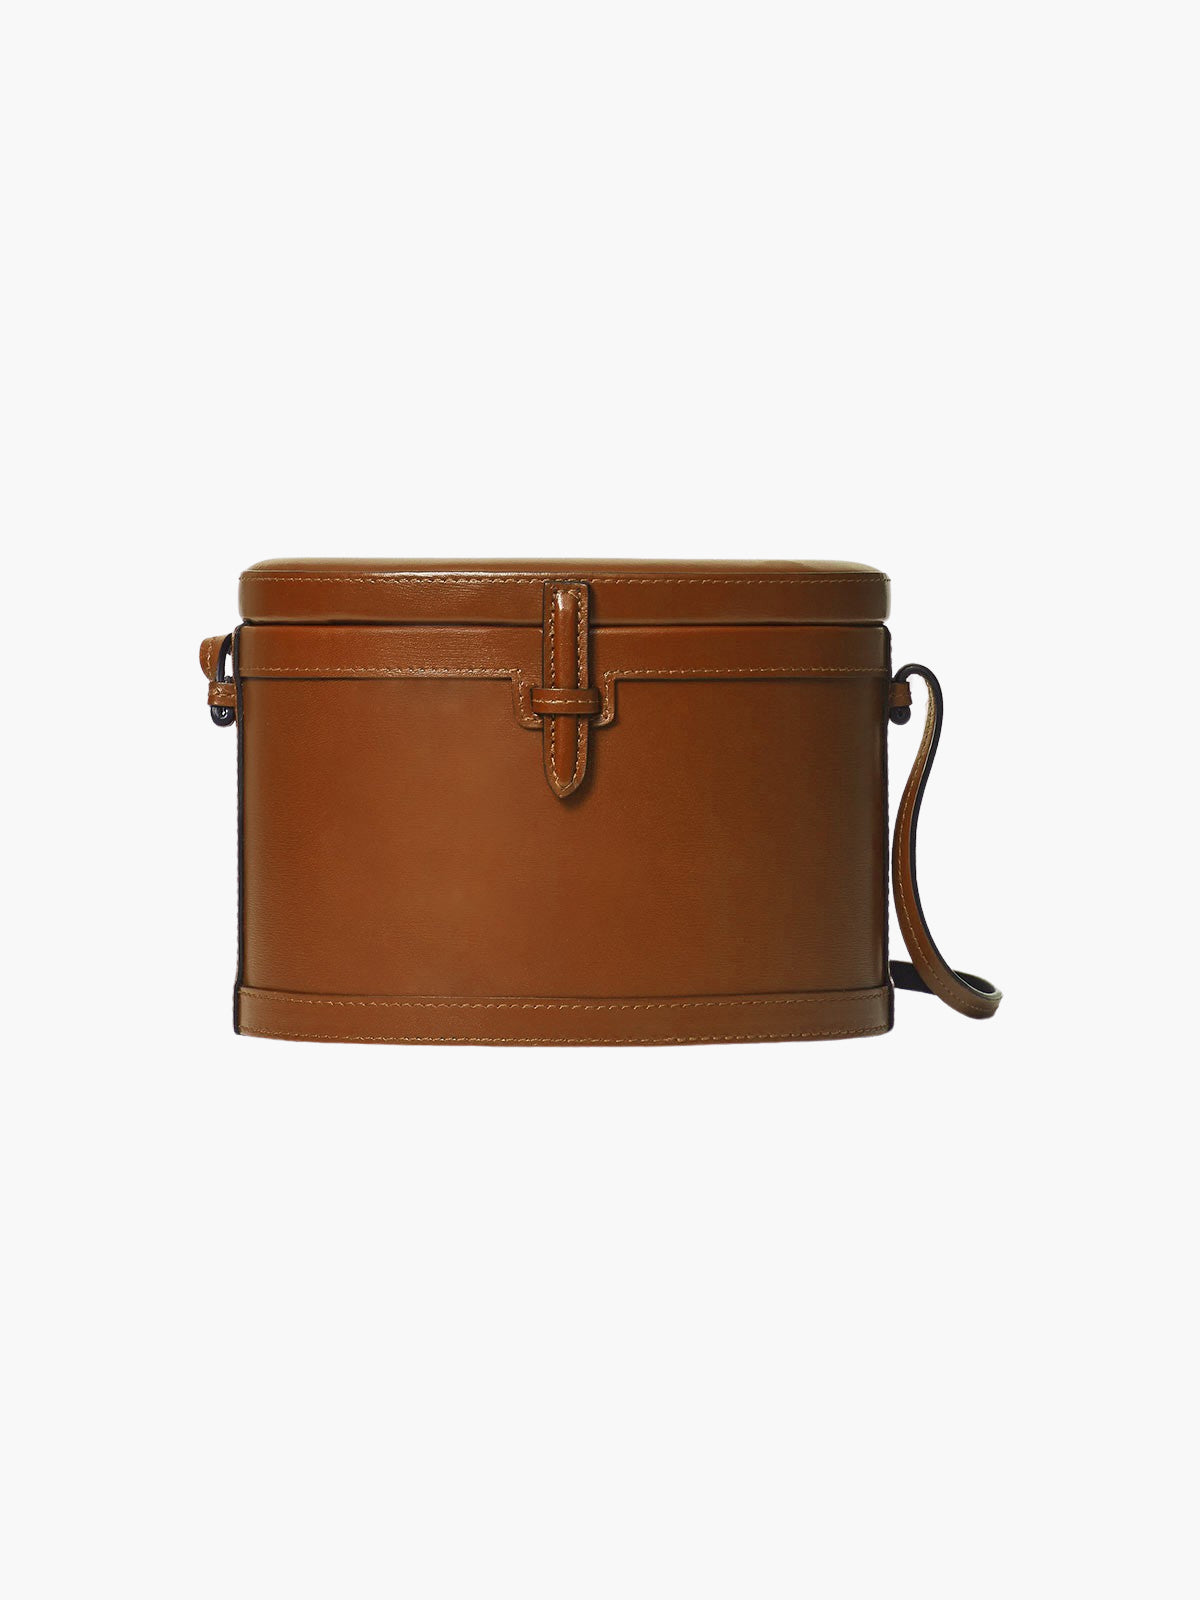 Round Trunk Bag | Cognac